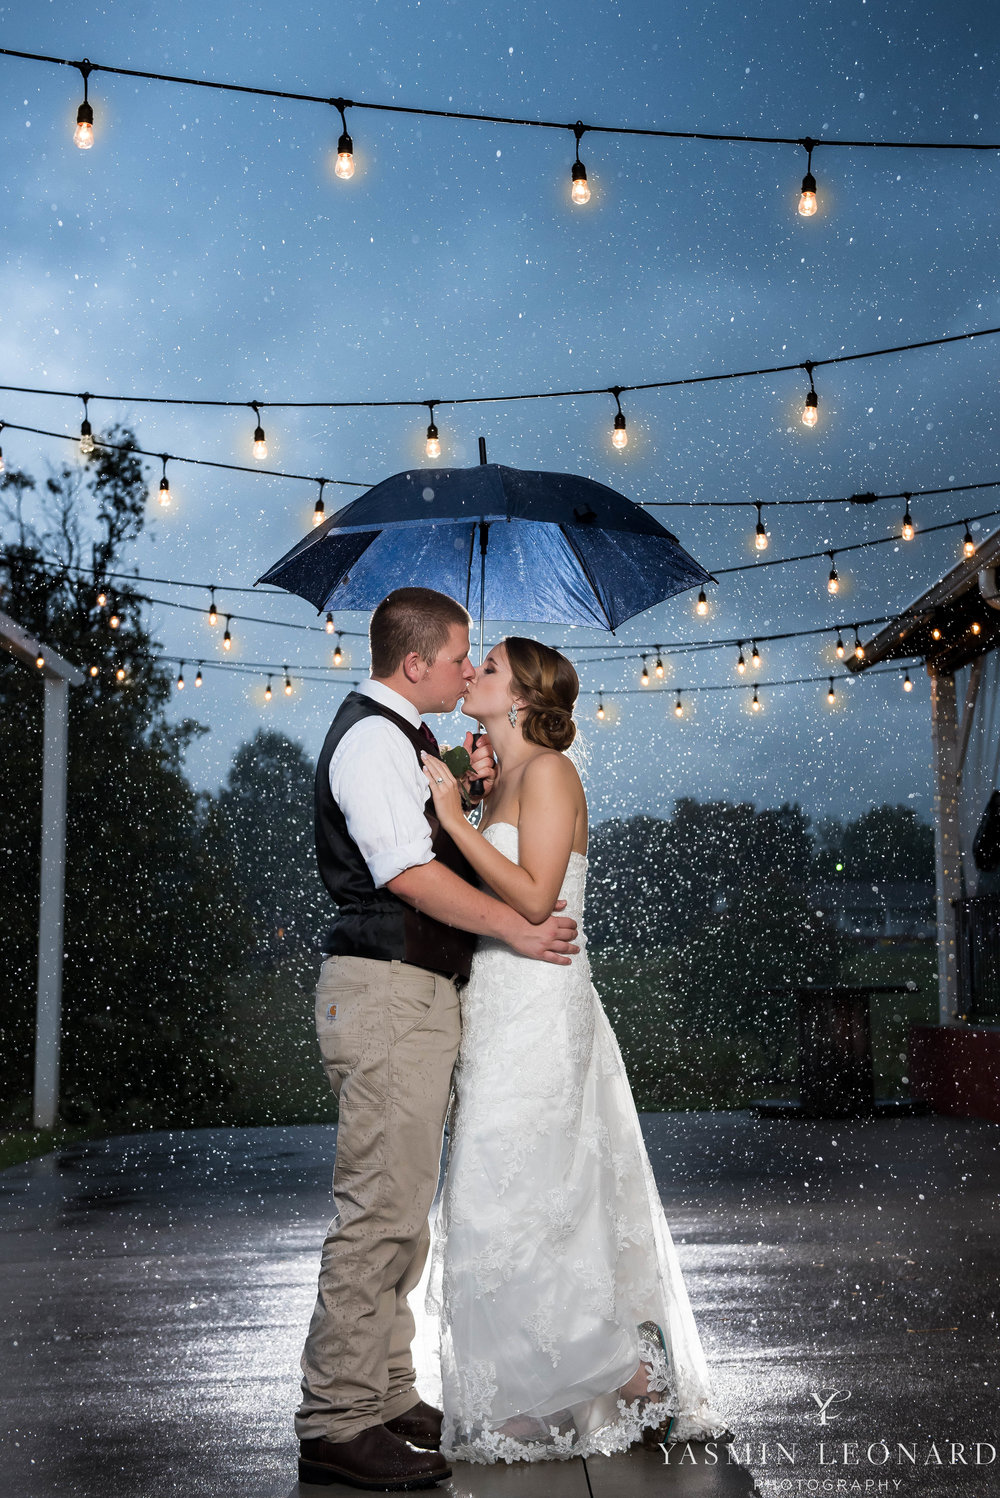 Millikan Farms - NC Wedding Venue - NC Wedding Photographer - Yasmin Leonard Photography - Rain on your wedding day-75.jpg